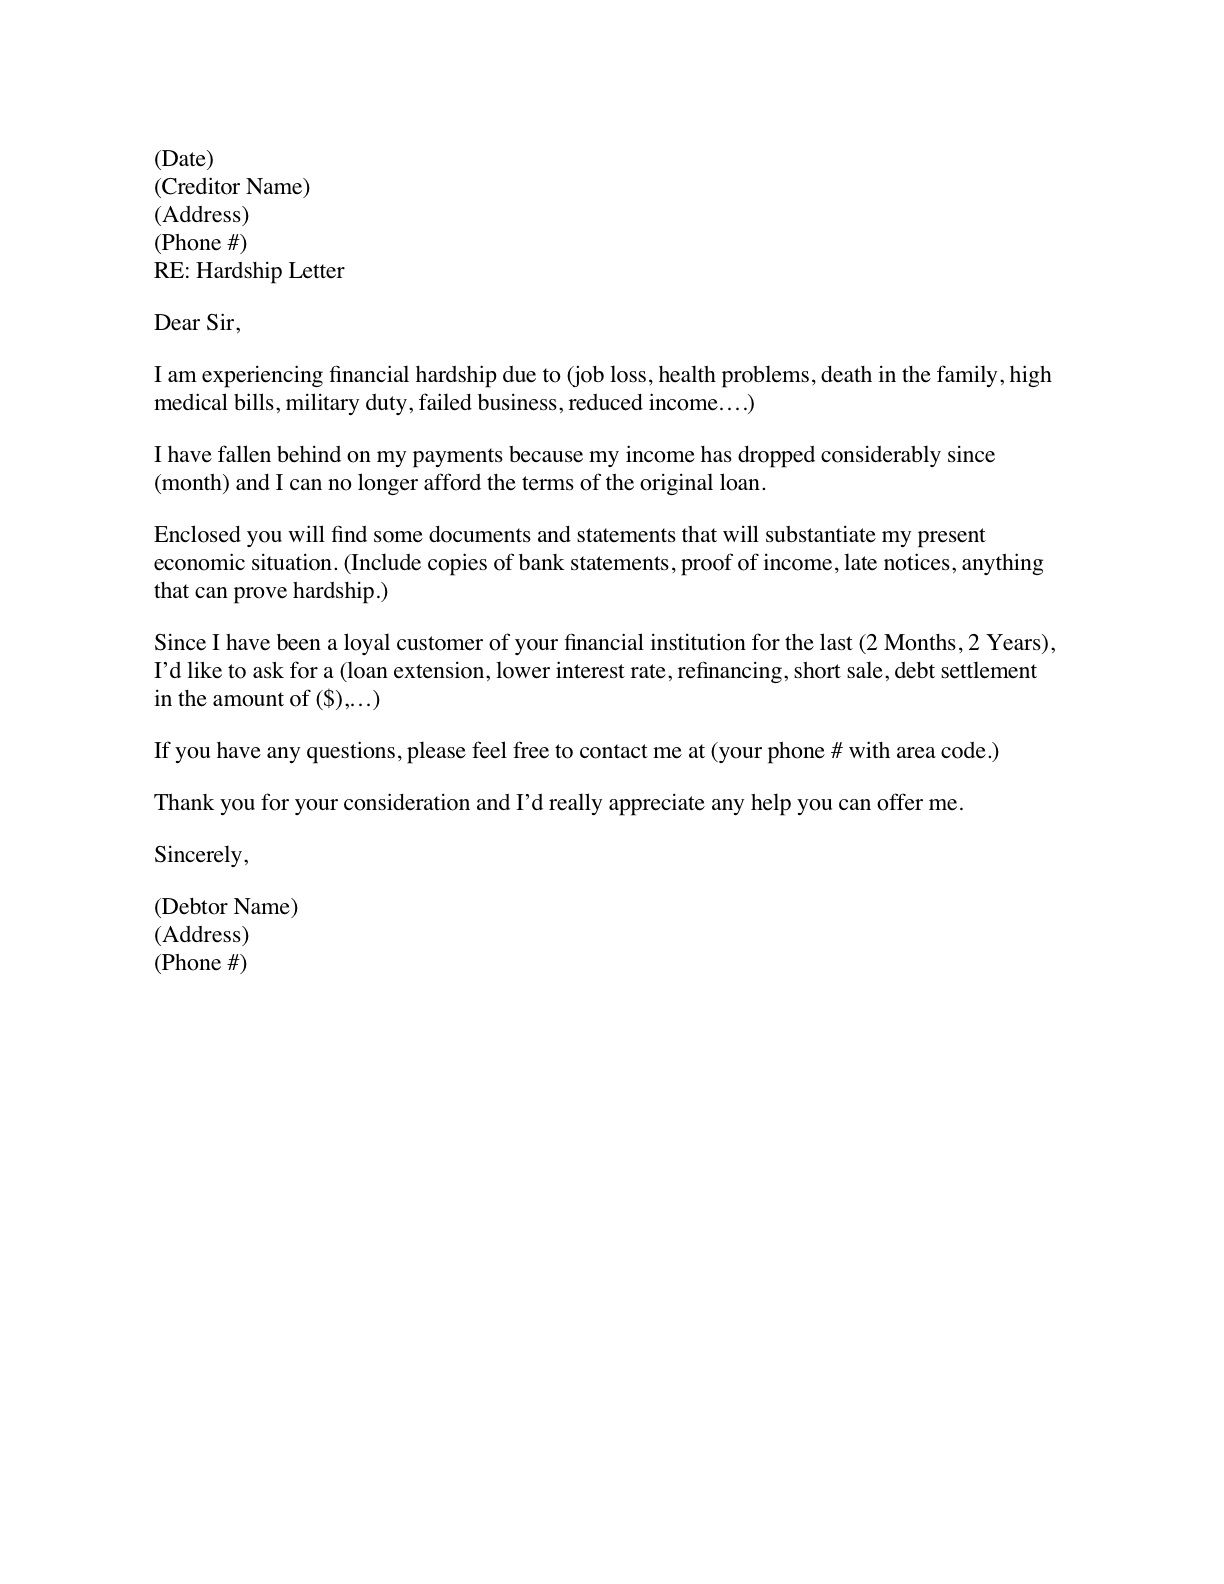 Financial Hardship Letter Template – Financial Hardship Letters